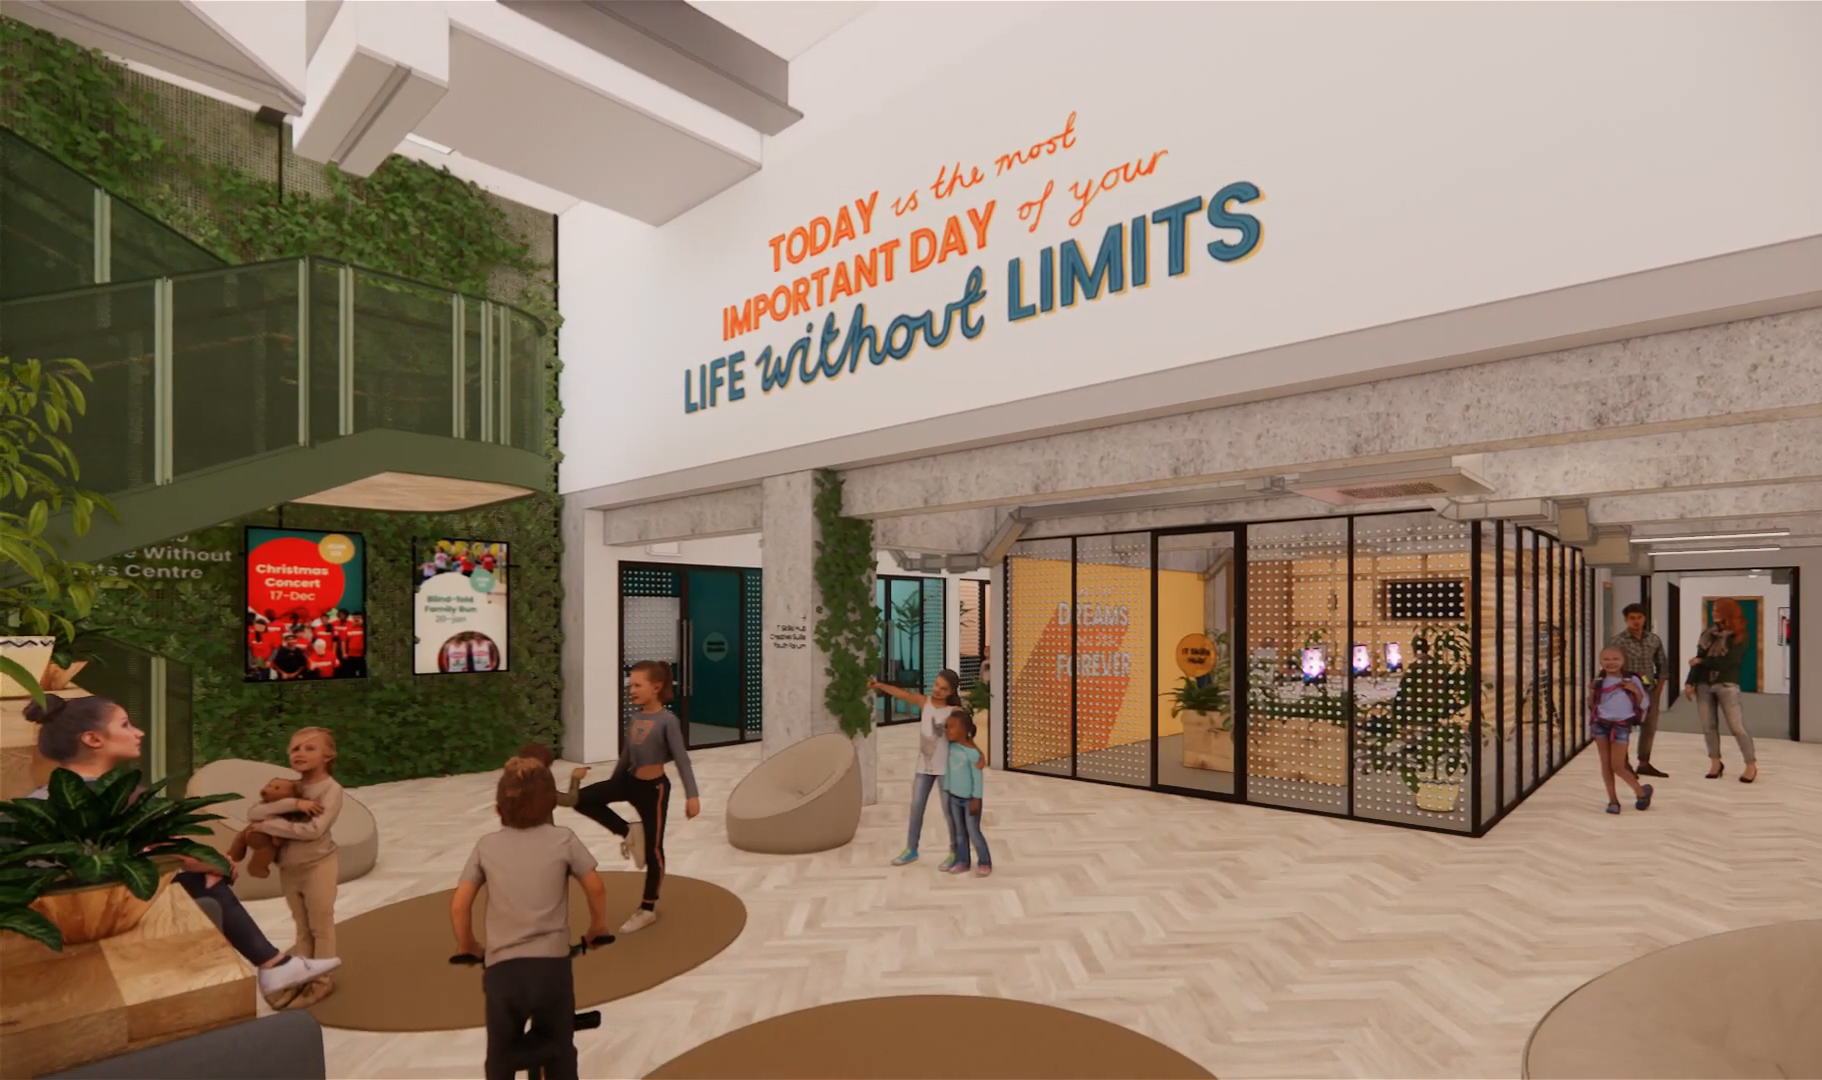 A virtual image of the lobby of the Life Without Limits Centre.